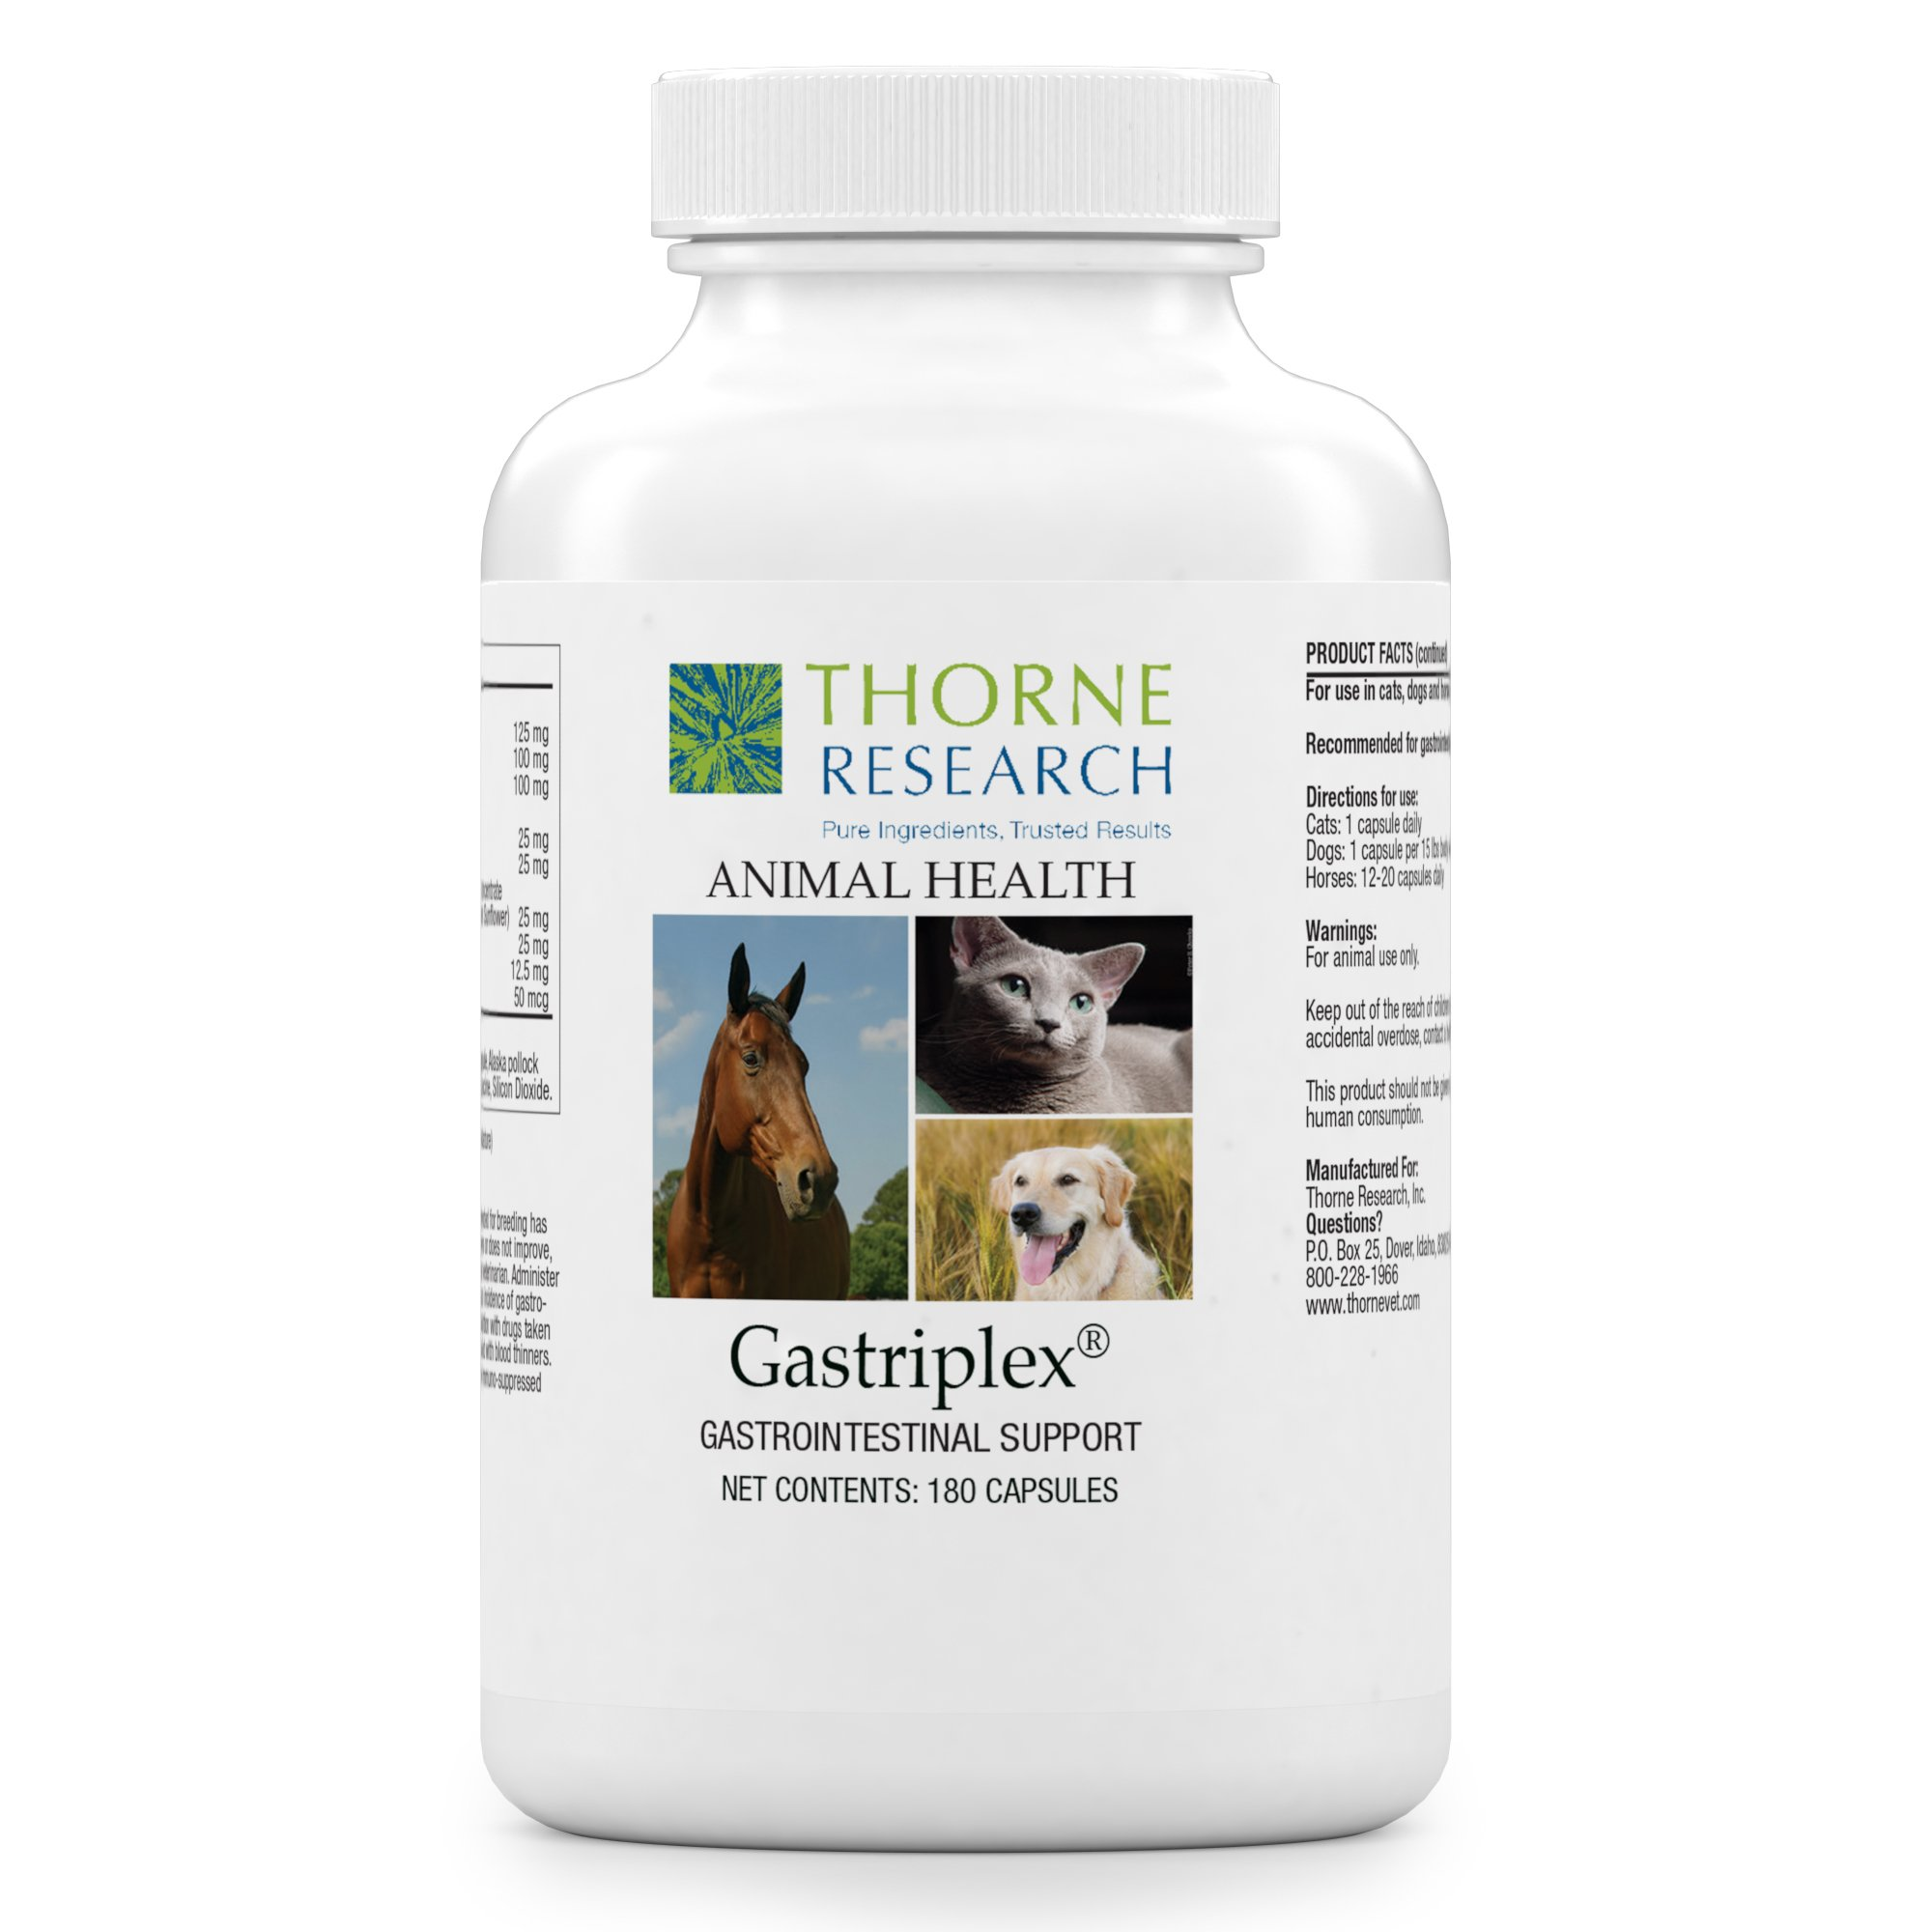 Thorne Research Veterinary - Gastriplex - Gastrointestinal Support for Small Animals & Horses - 180 Capsules